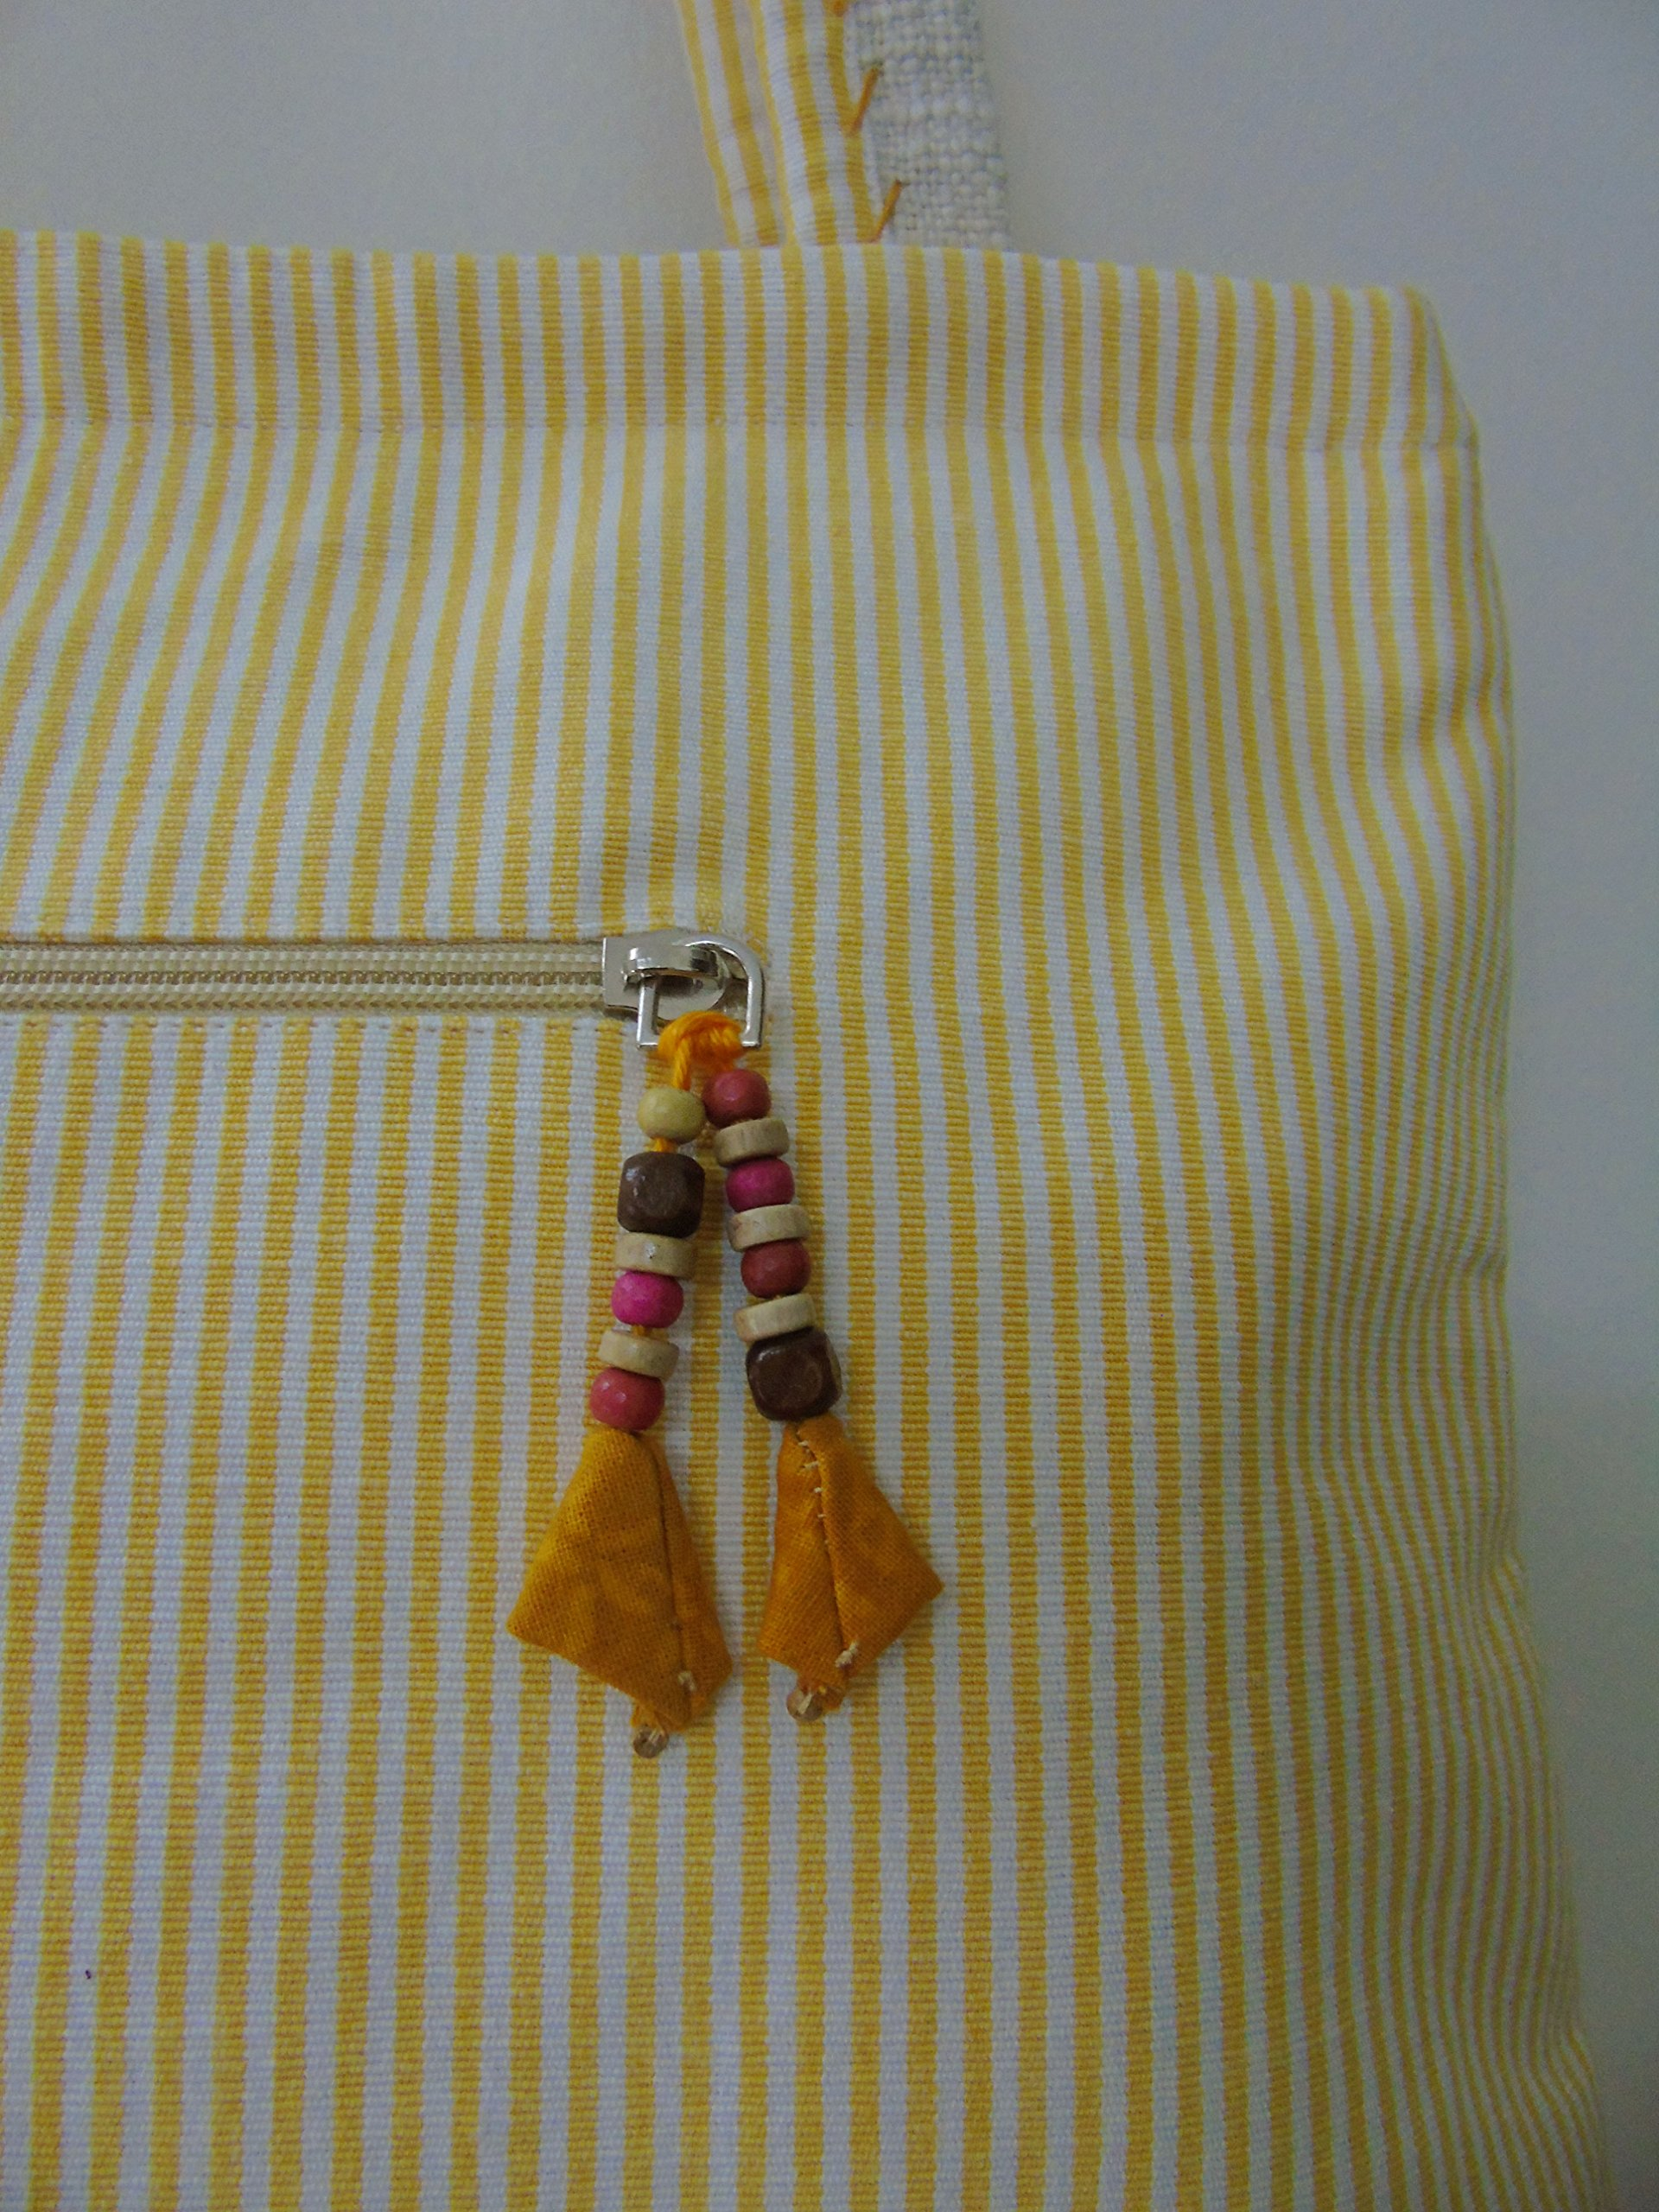 Panigha India Handmade Embroidered Top Handle Tote Bag in Natural color with golden Yellow Pin Stripe - handmade-bags